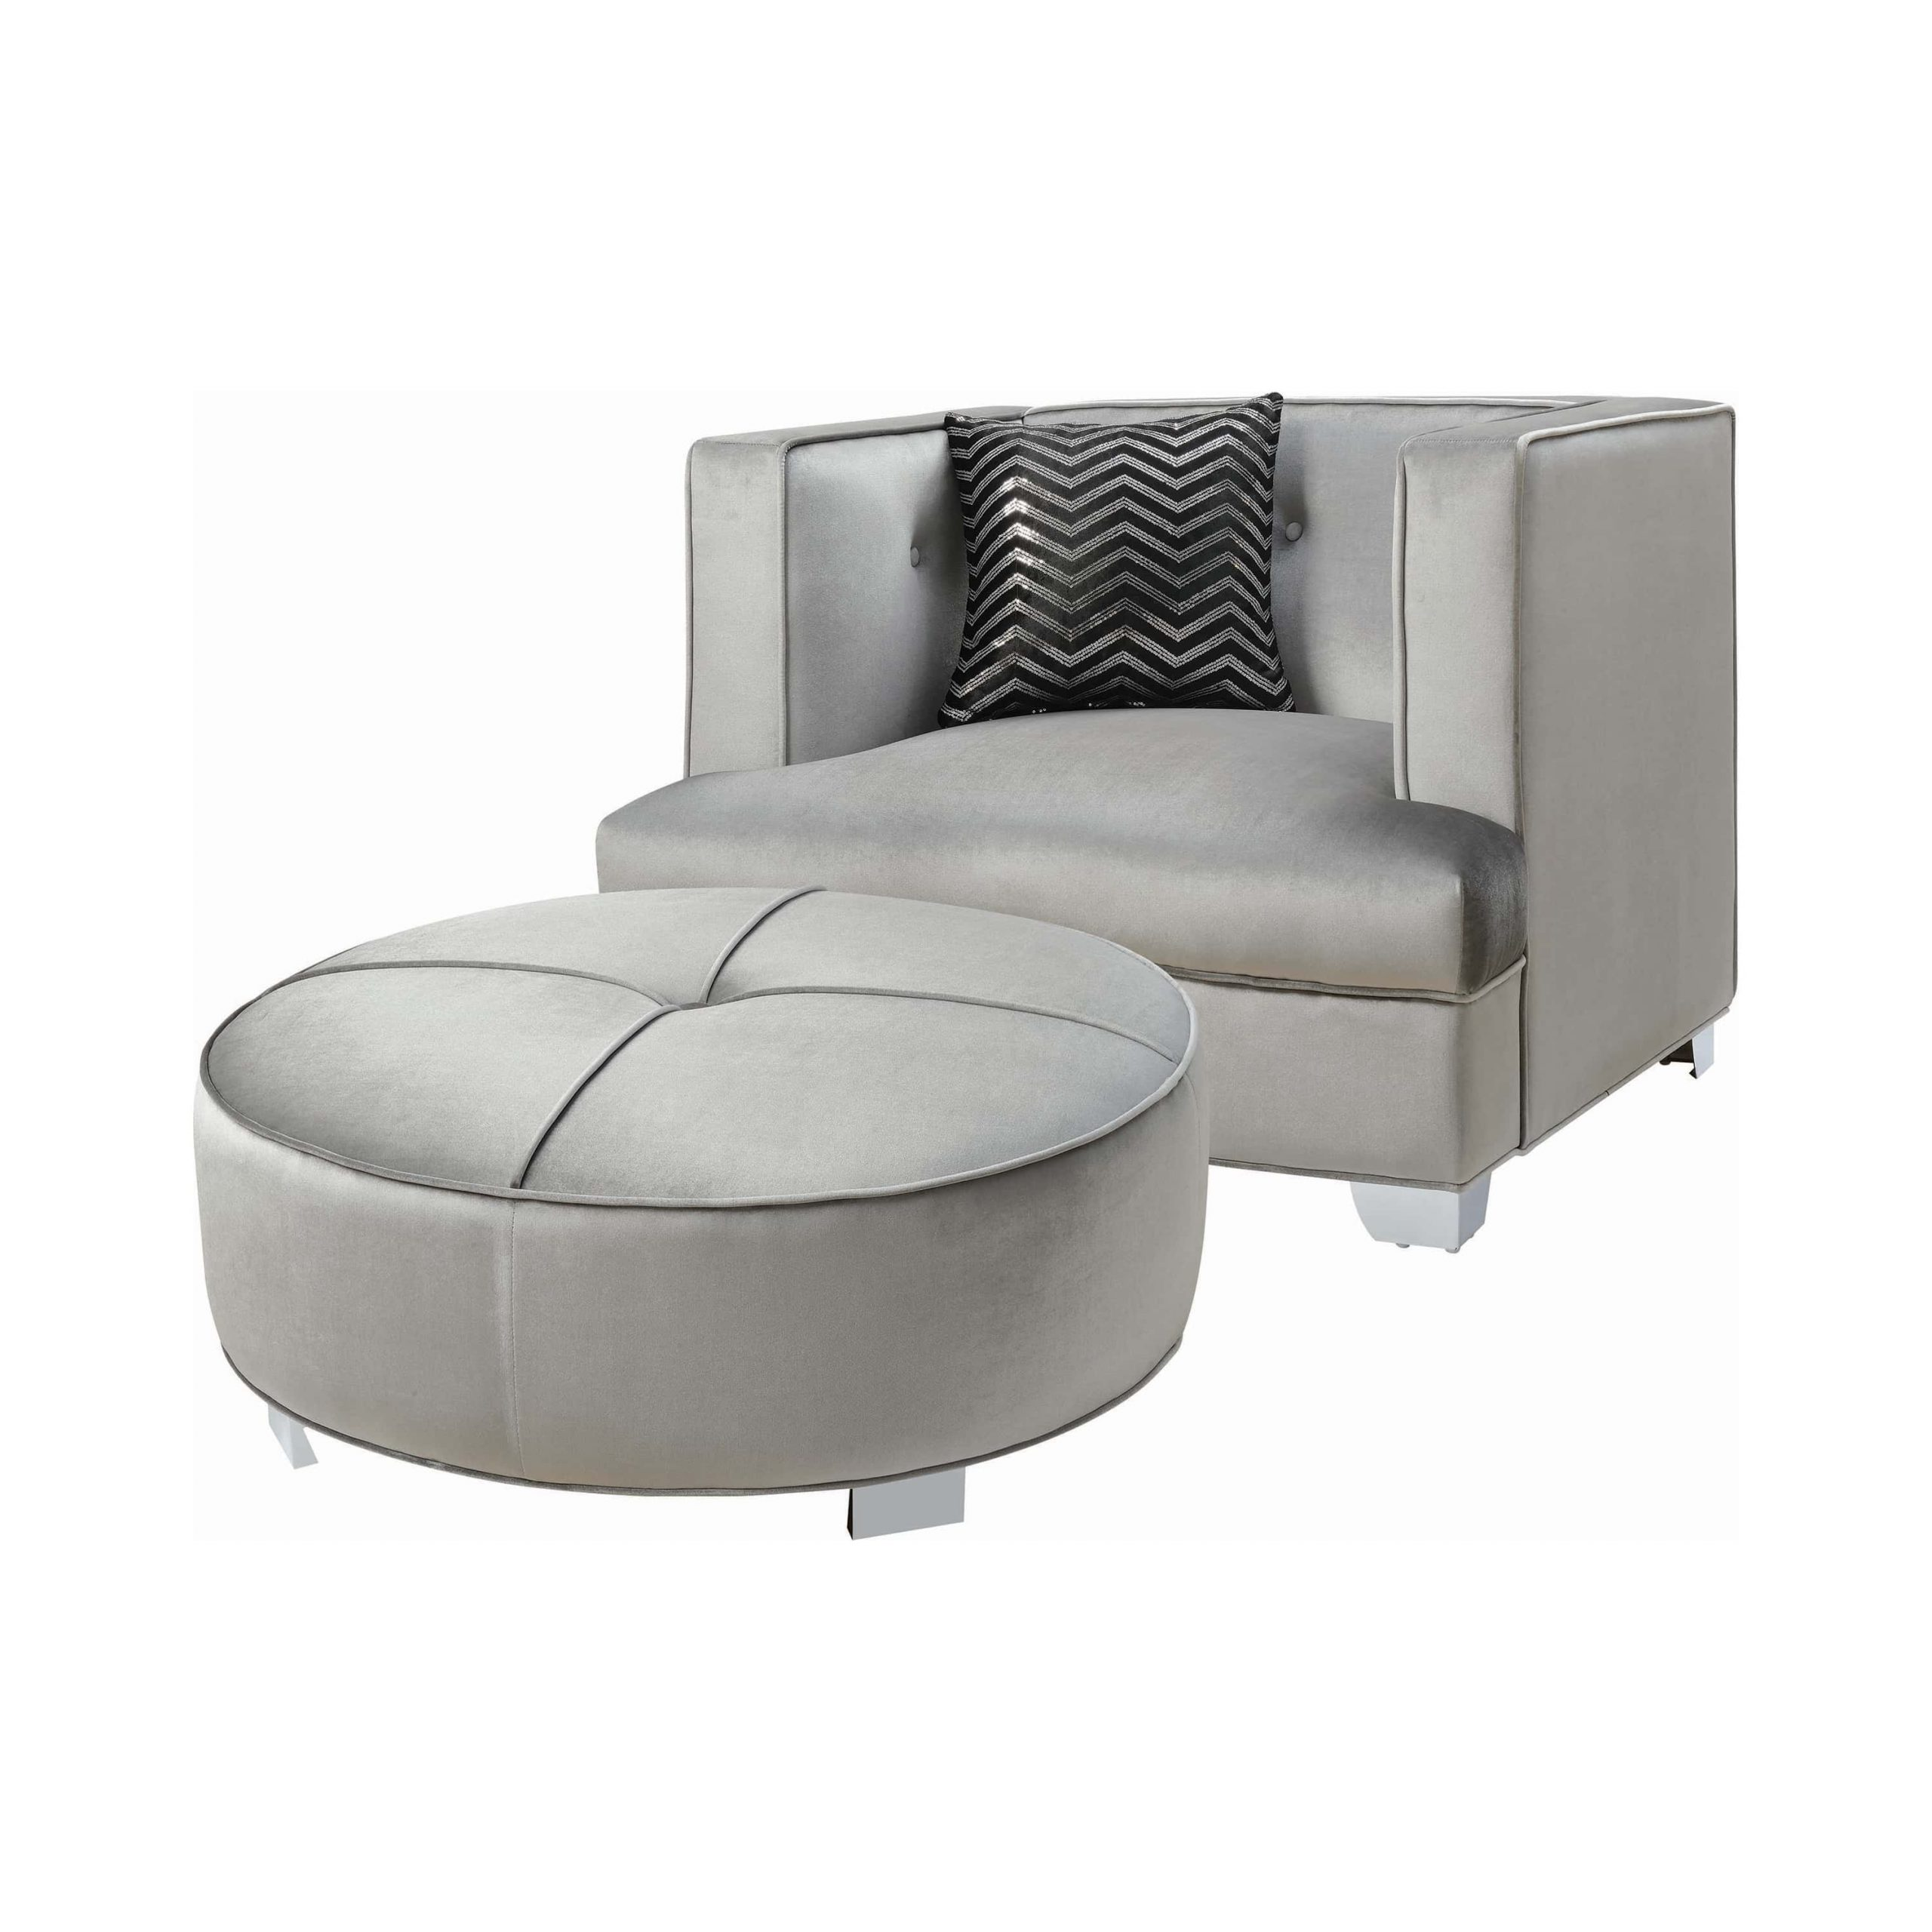 Latest Caldwell Armchairs Regarding Caldwell Recessed Arm Upholstered Chair Silvercoaster (View 13 of 20)